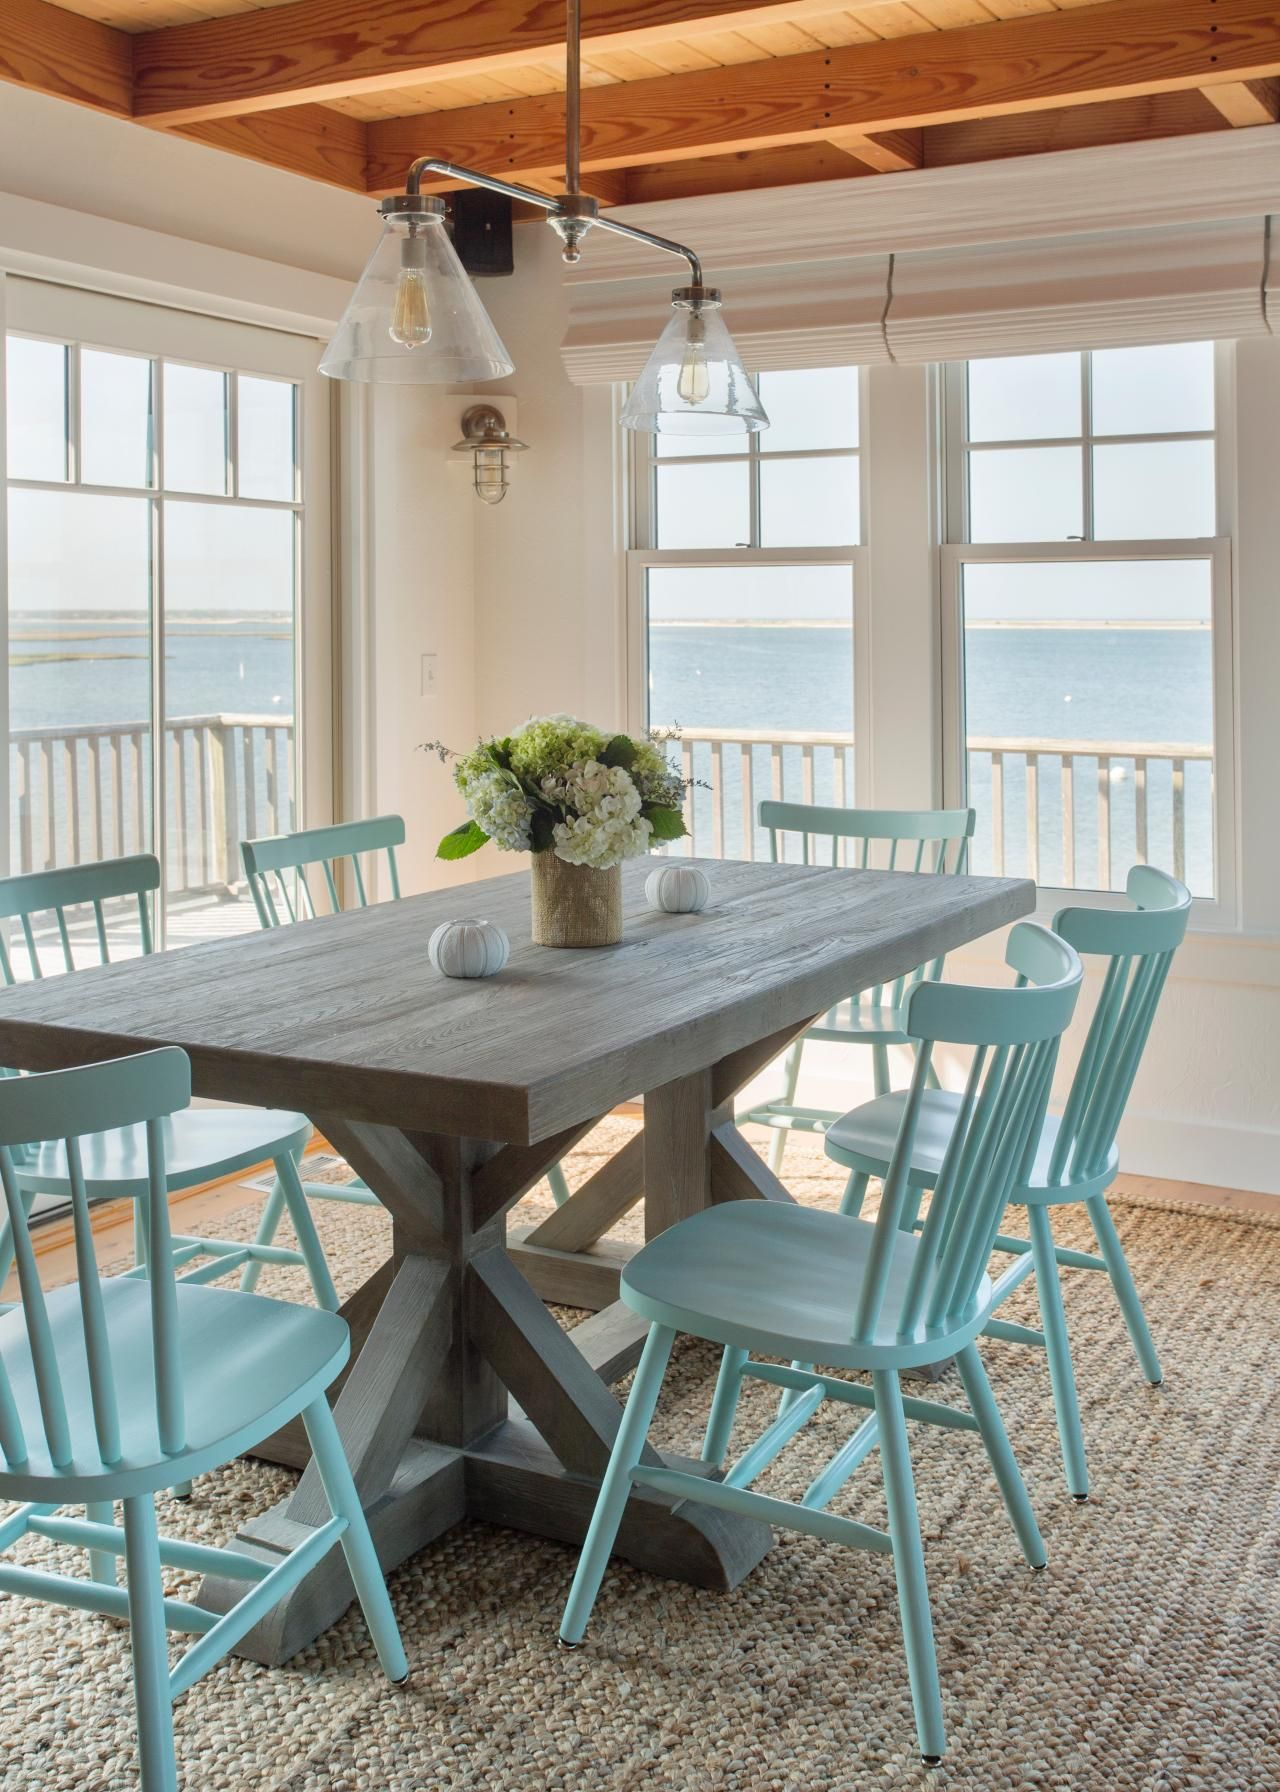 10 Furniture Pieces That Never Go Out of Style | Hgtv, Dining chairs ...